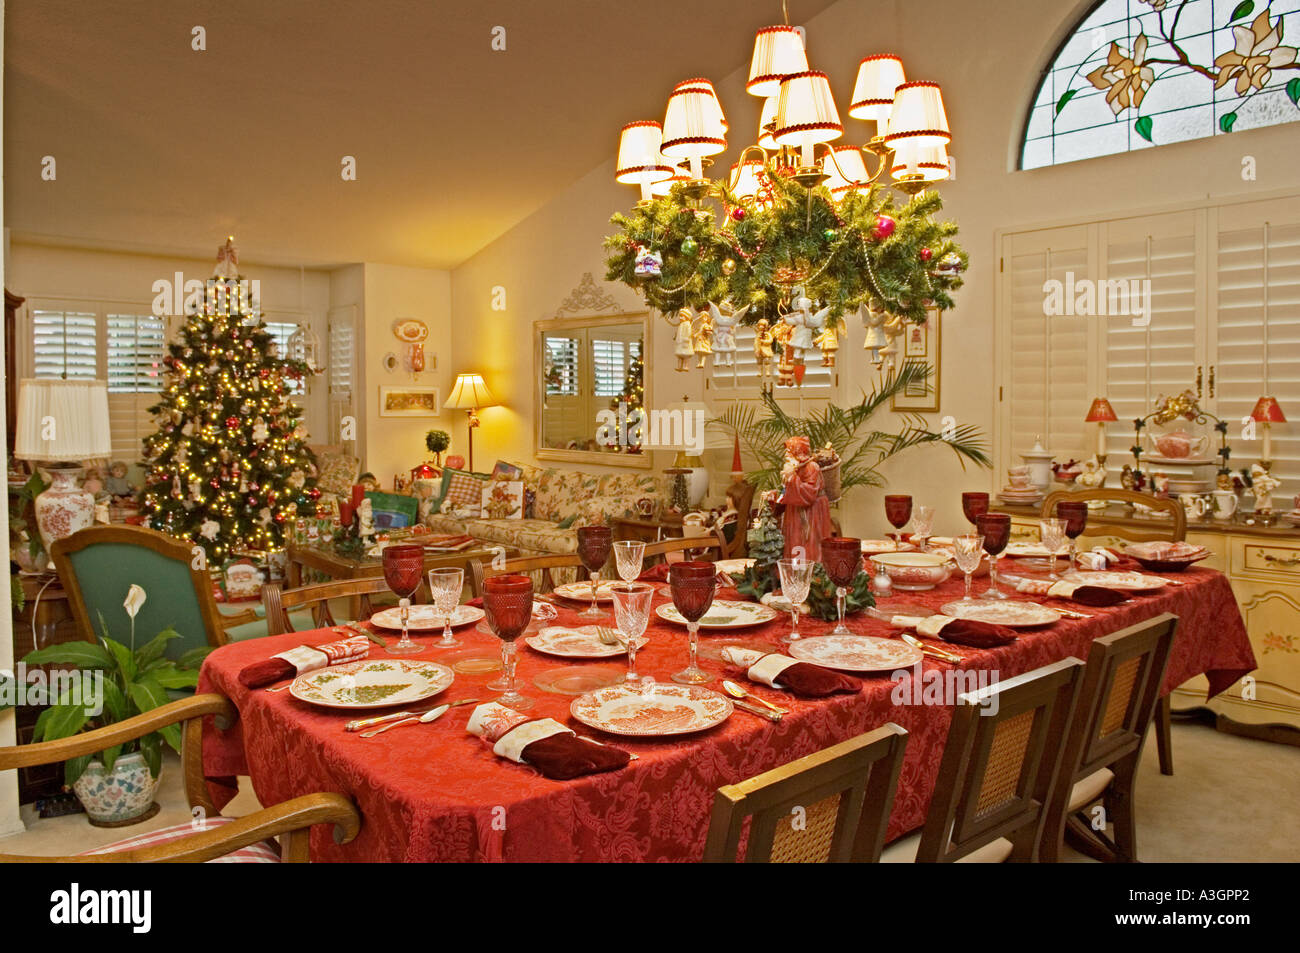 Dining room table set for Christmas dinner in living room of upscale house in southern California & Dining room table set for Christmas dinner in living room of upscale ...